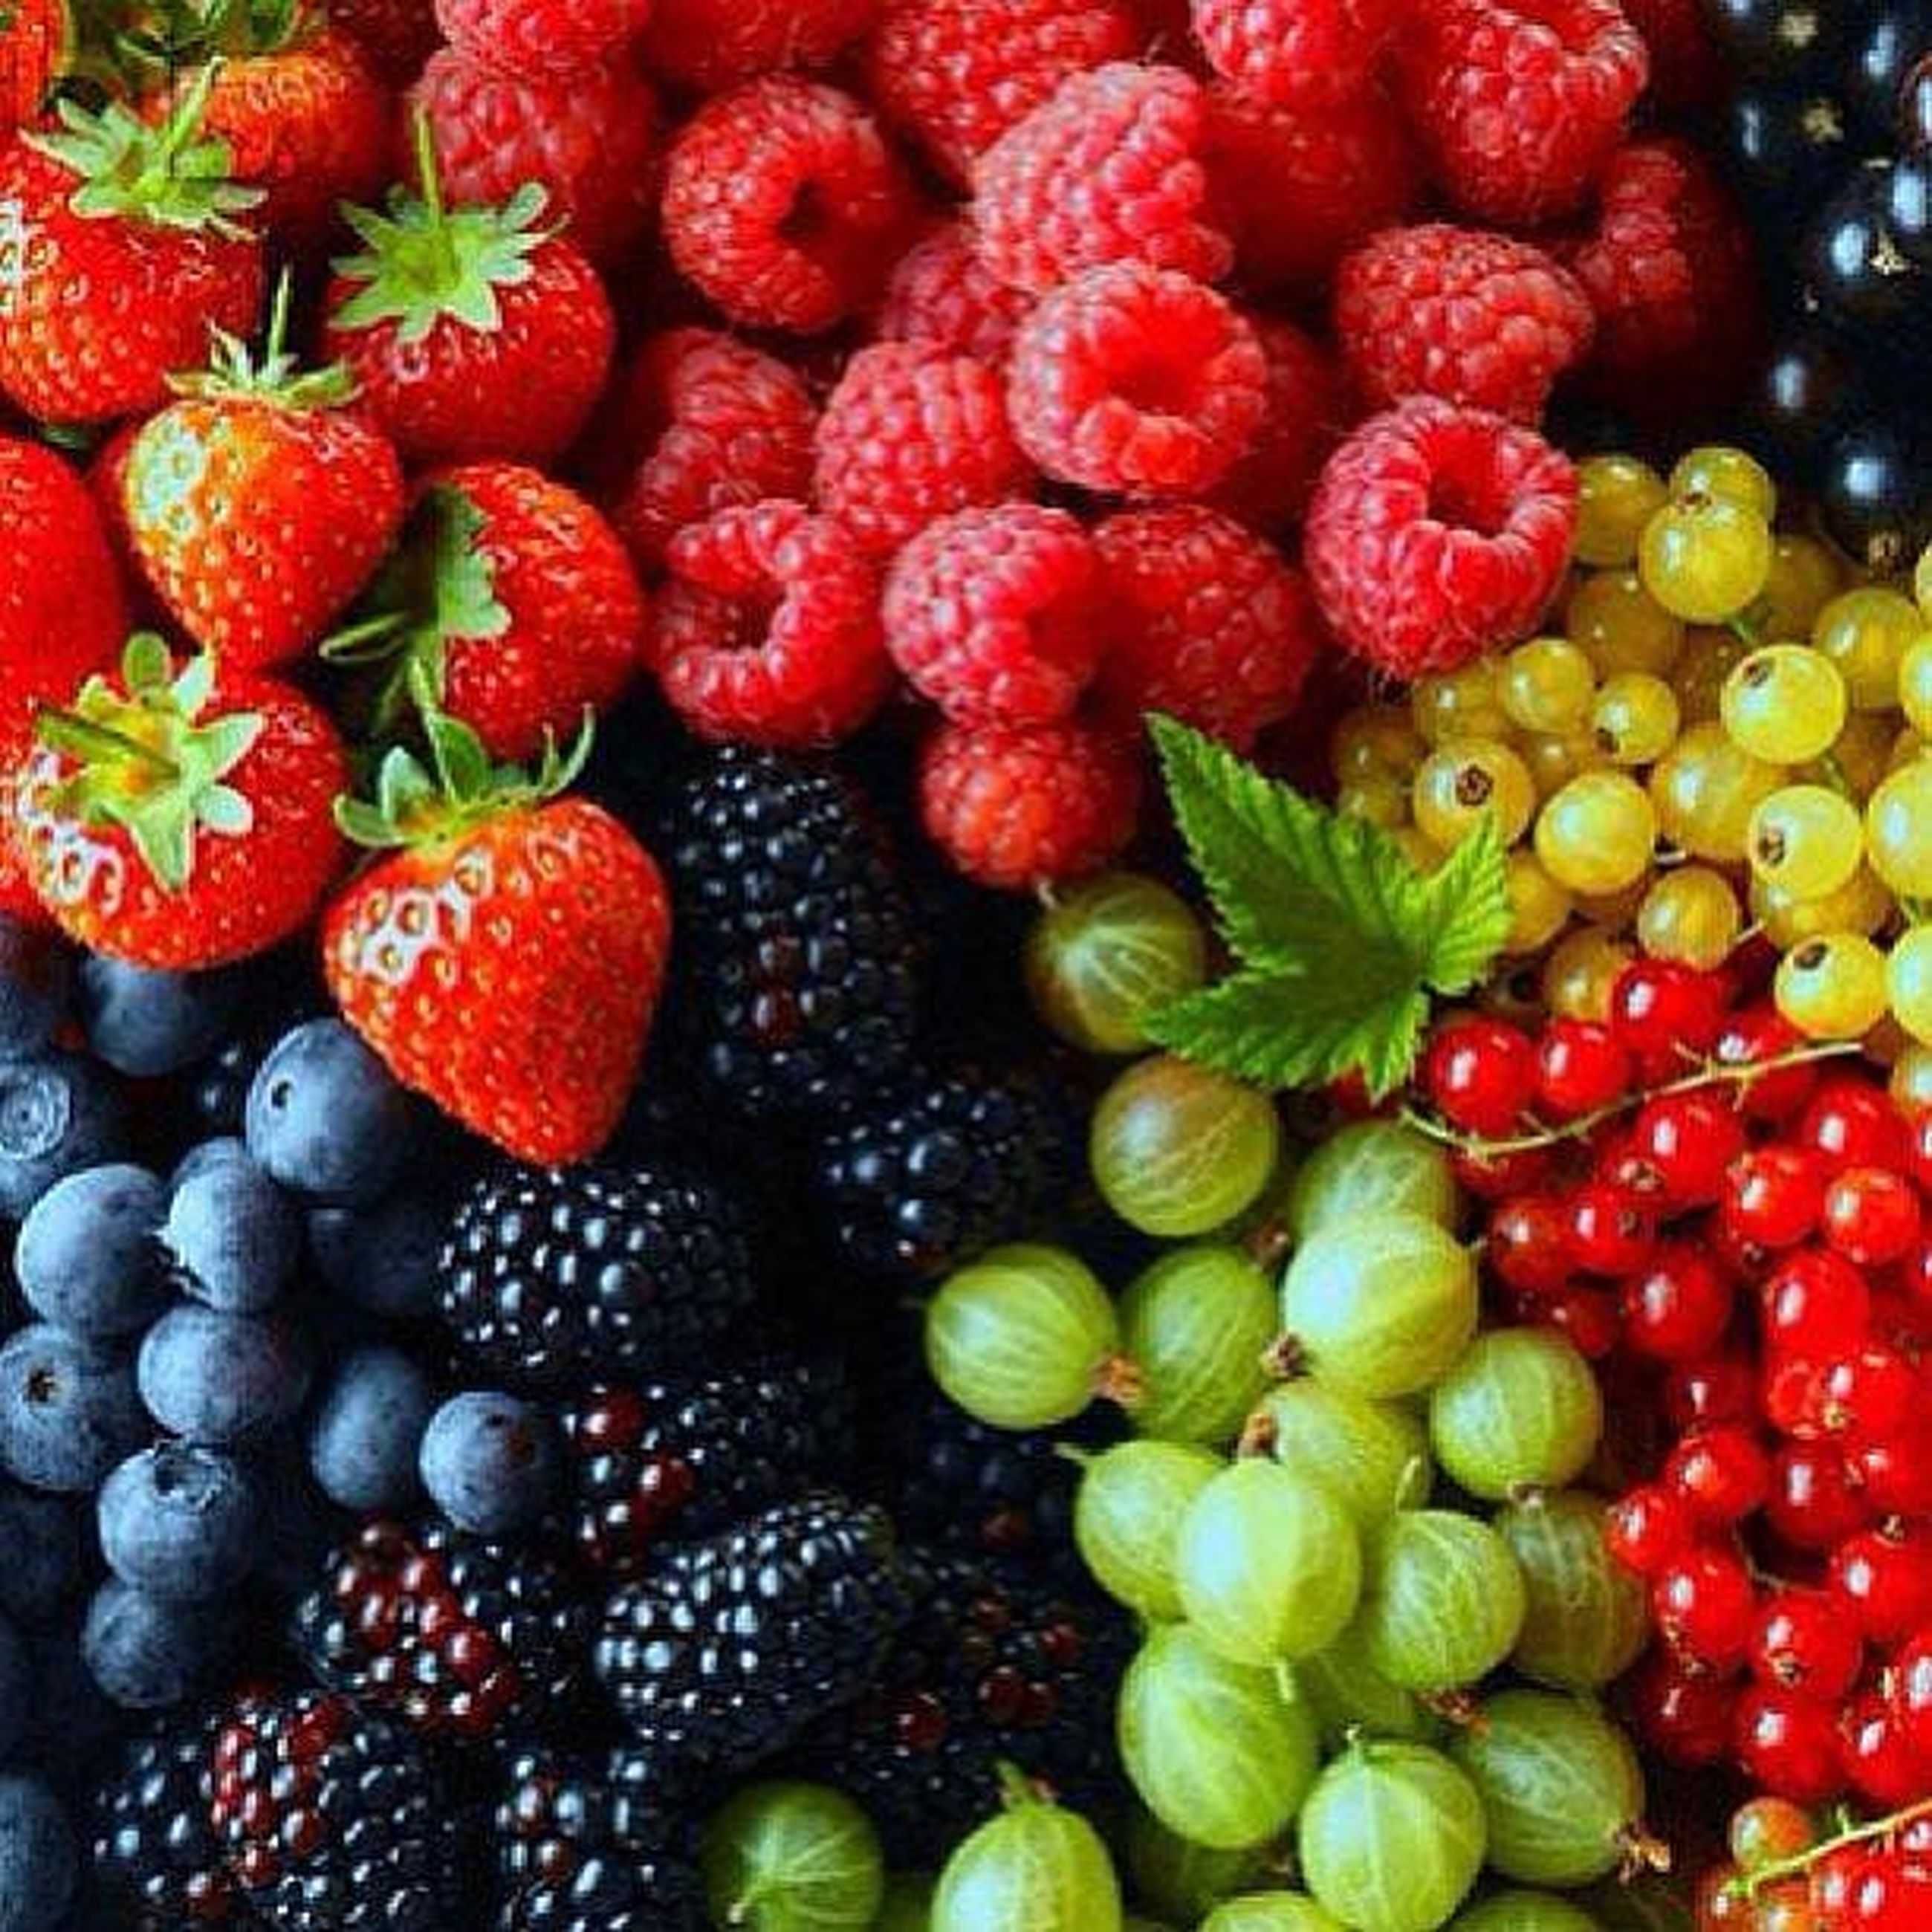 food and drink, fruit, food, red, healthy eating, freshness, abundance, large group of objects, full frame, backgrounds, market, for sale, retail, strawberry, ripe, market stall, high angle view, still life, organic, variation